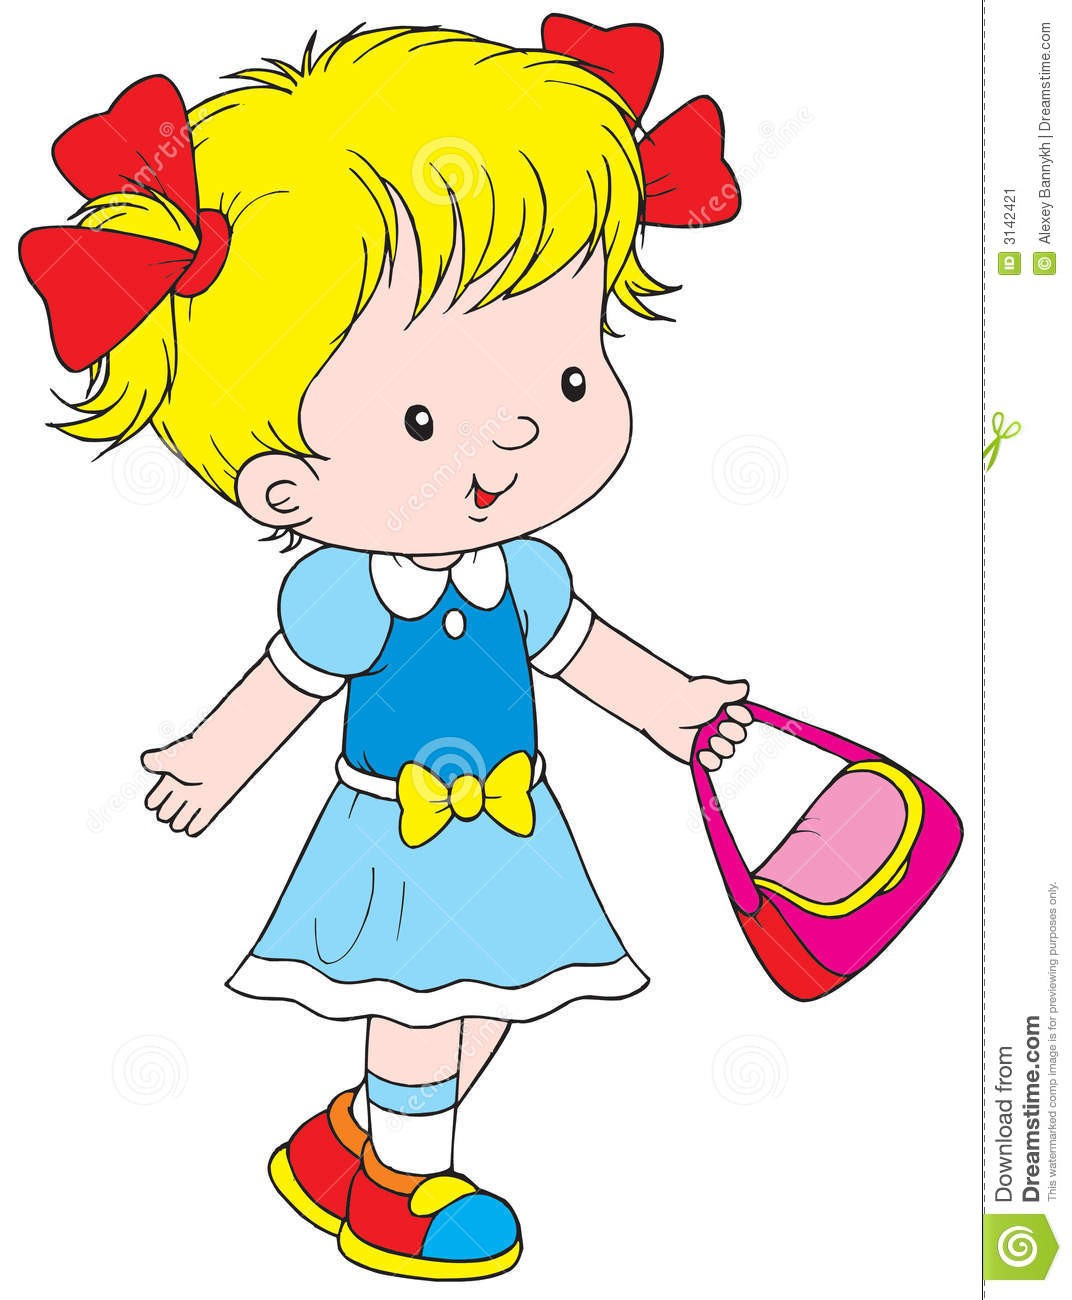 Clipart girl child image library stock In Clipart Of Girl Child Walking 3142421 | Clip Art image library stock